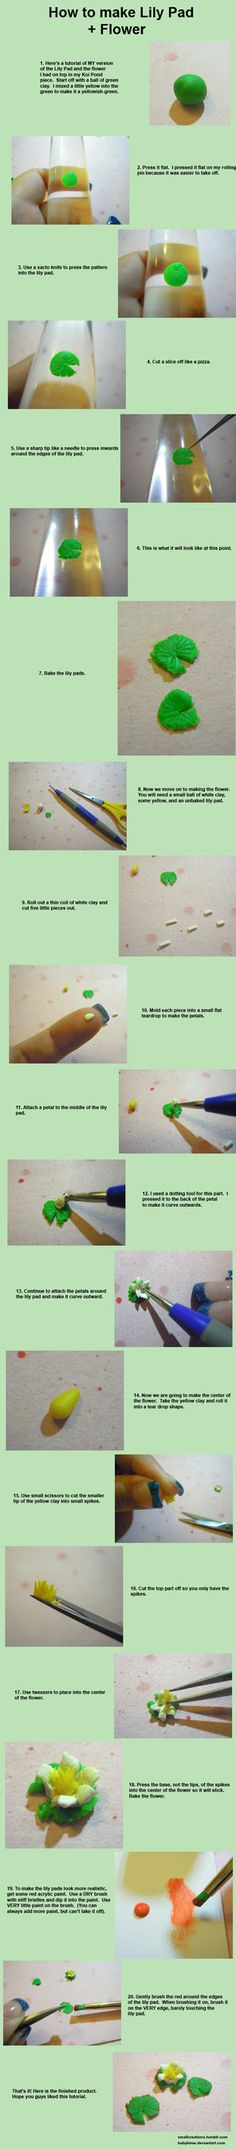 Lily Pad Tutorial 2/3 by *SmallCreationsByMel on deviantART